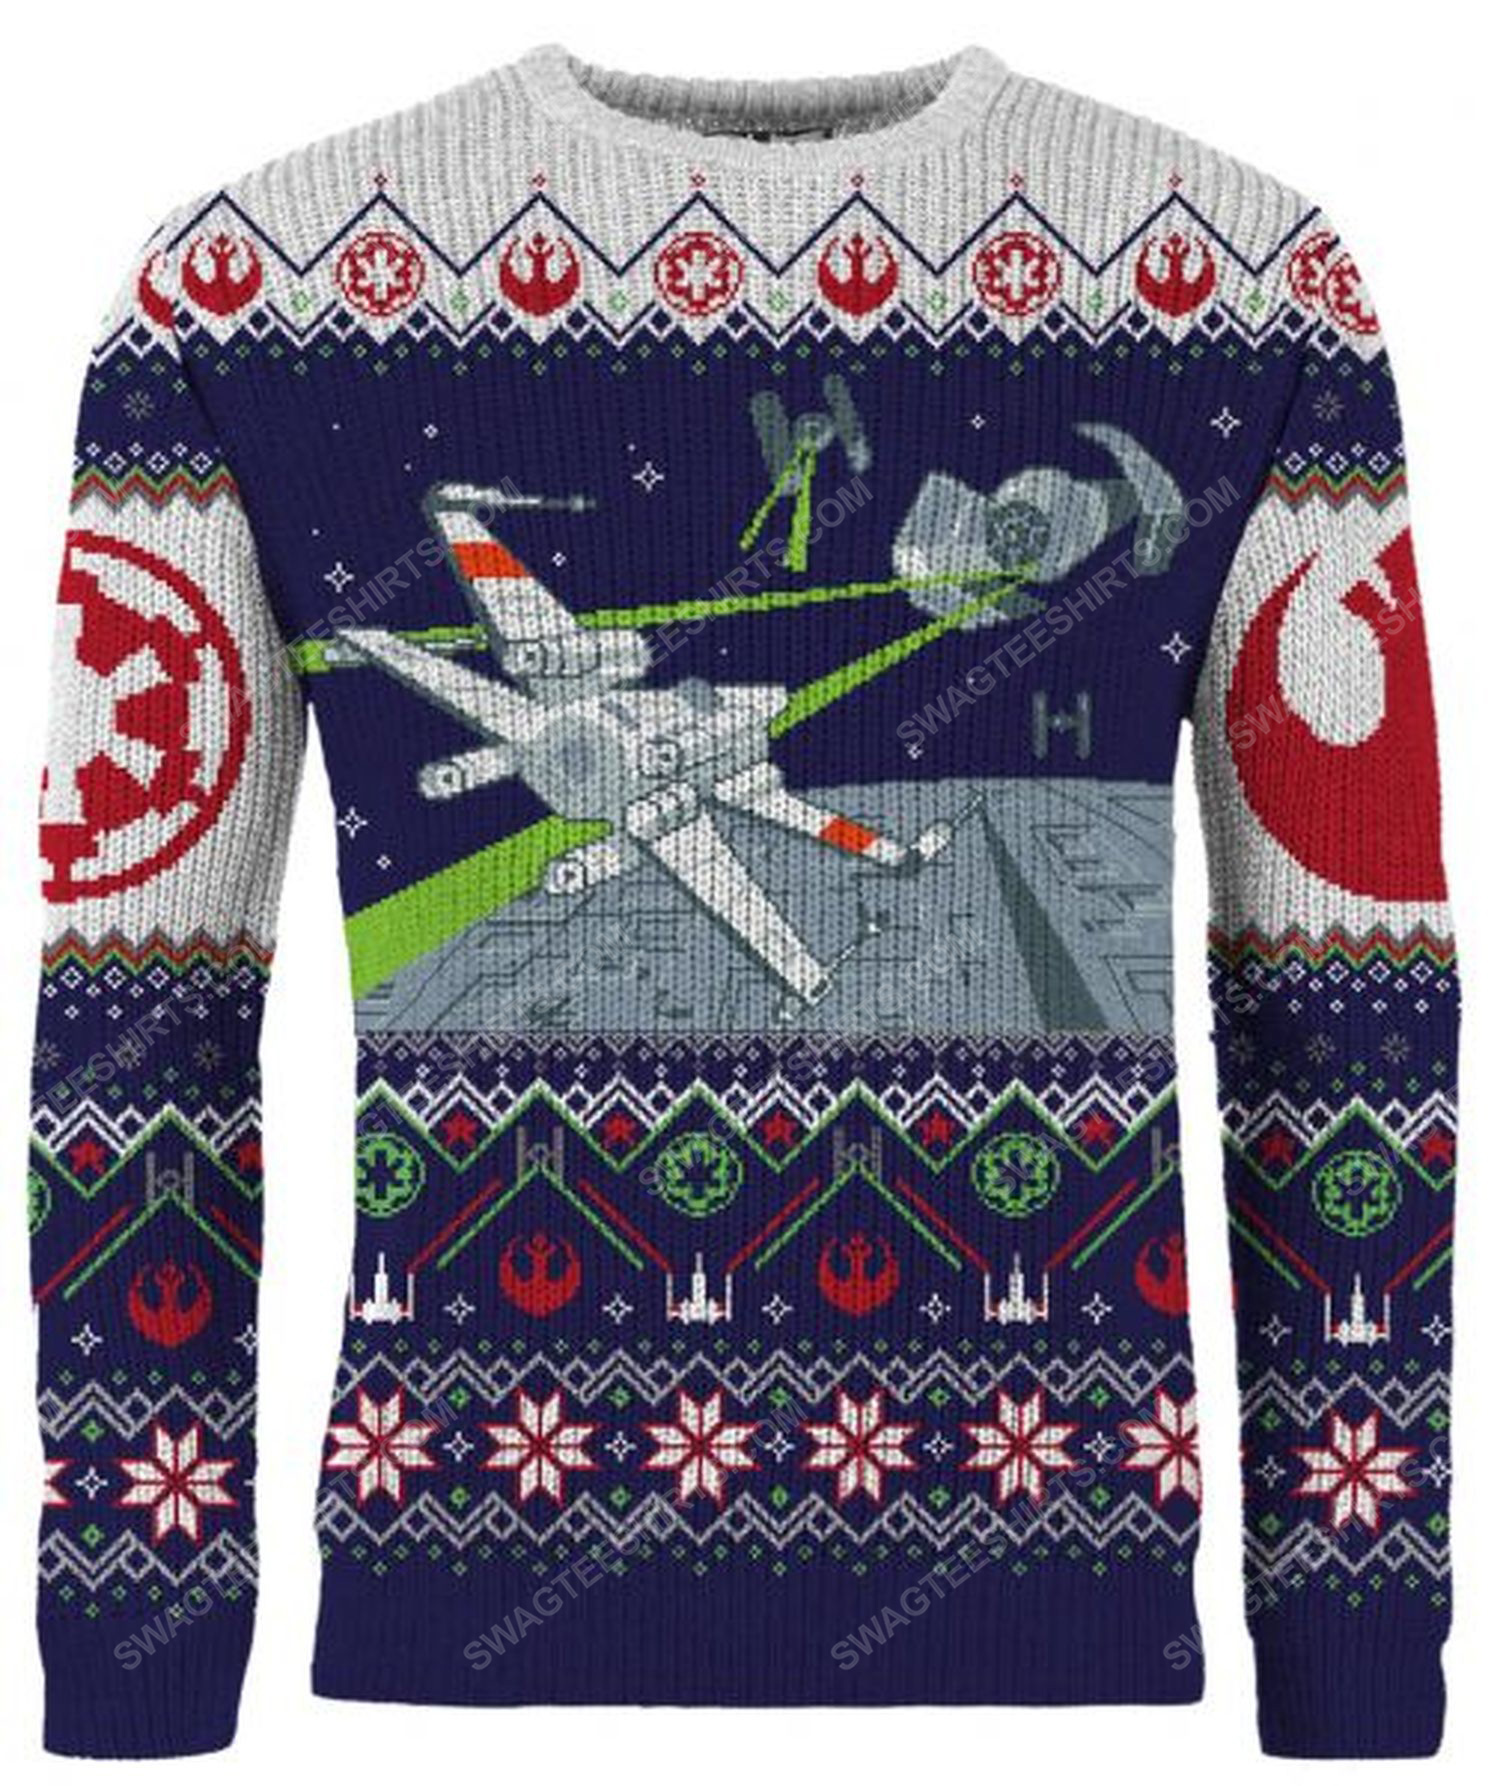 Star wars x-wing and tie fighter full print ugly christmas sweater